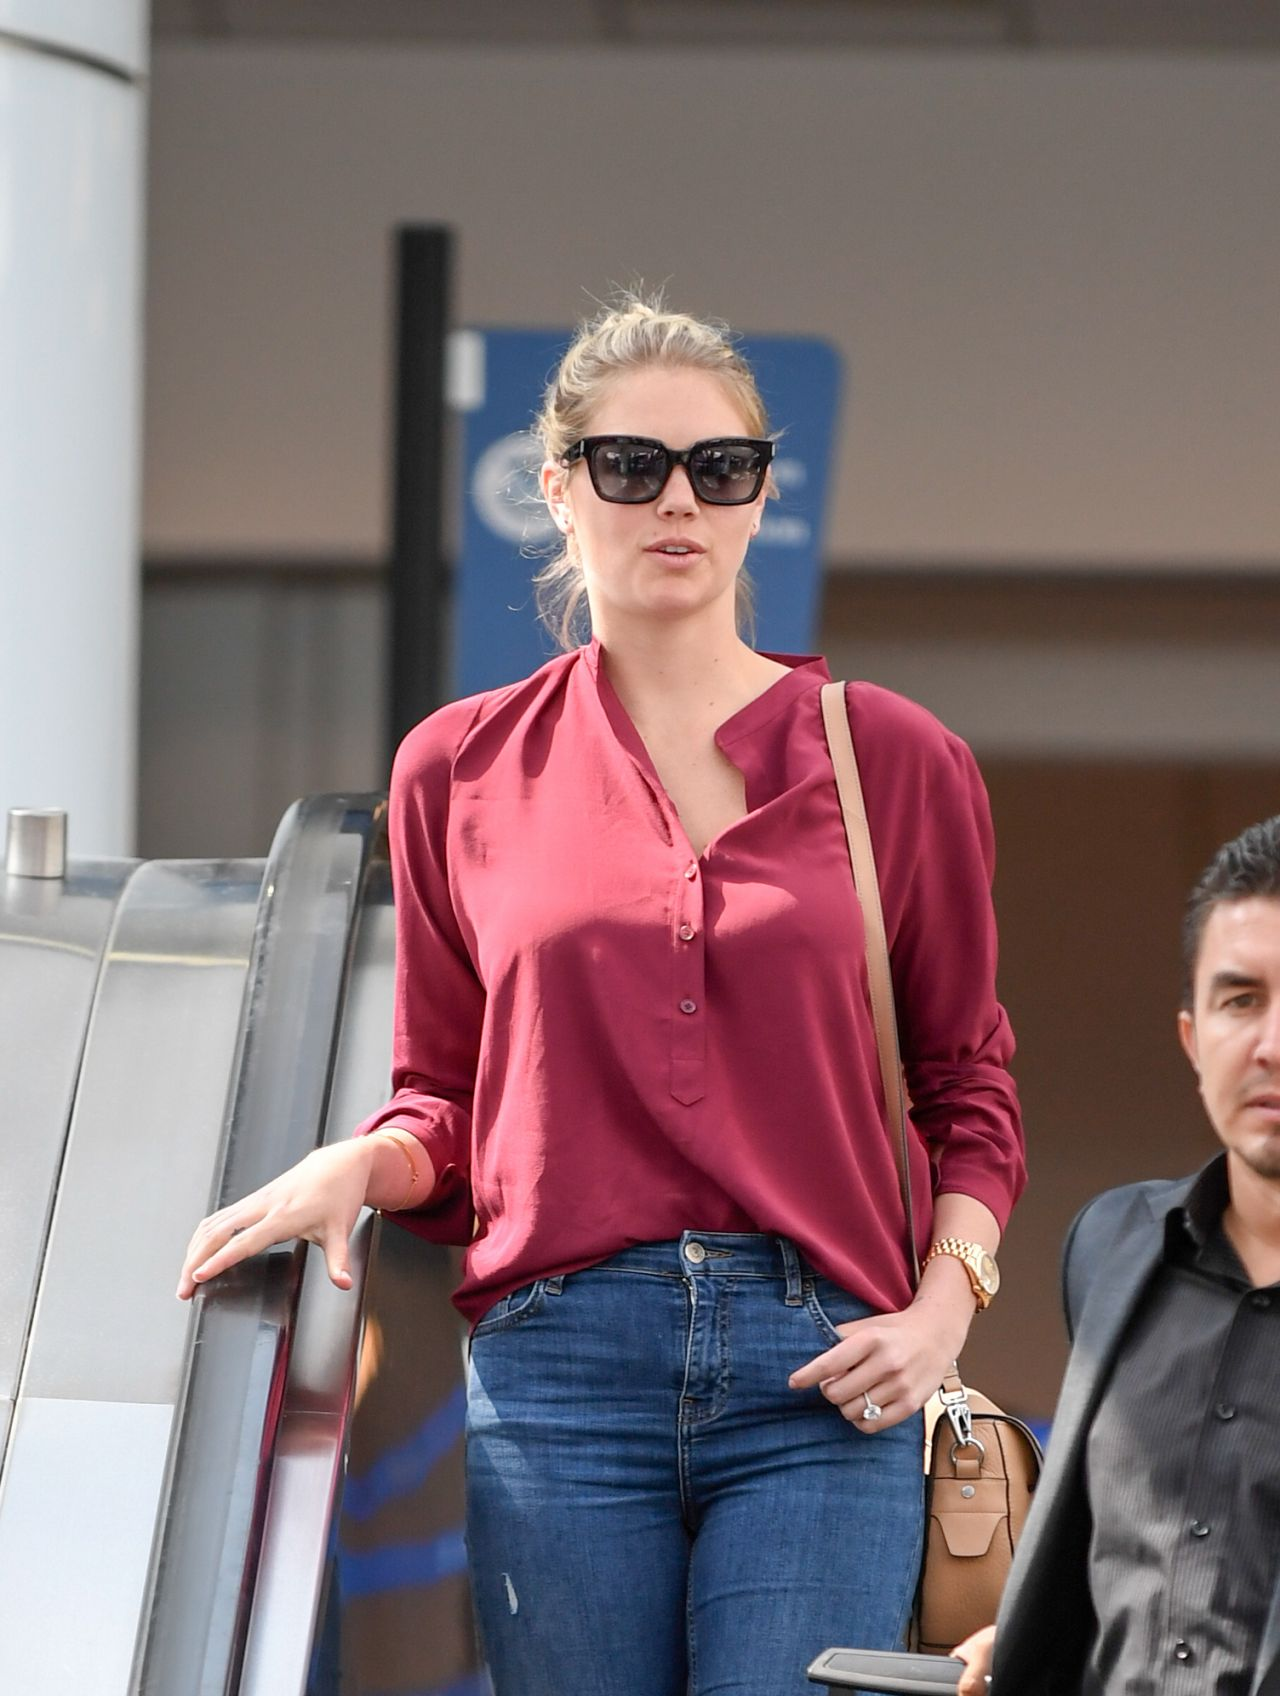 56b899b8d Kate Upton - Arriving into LAX Airport in Los Angeles 7 15 2016